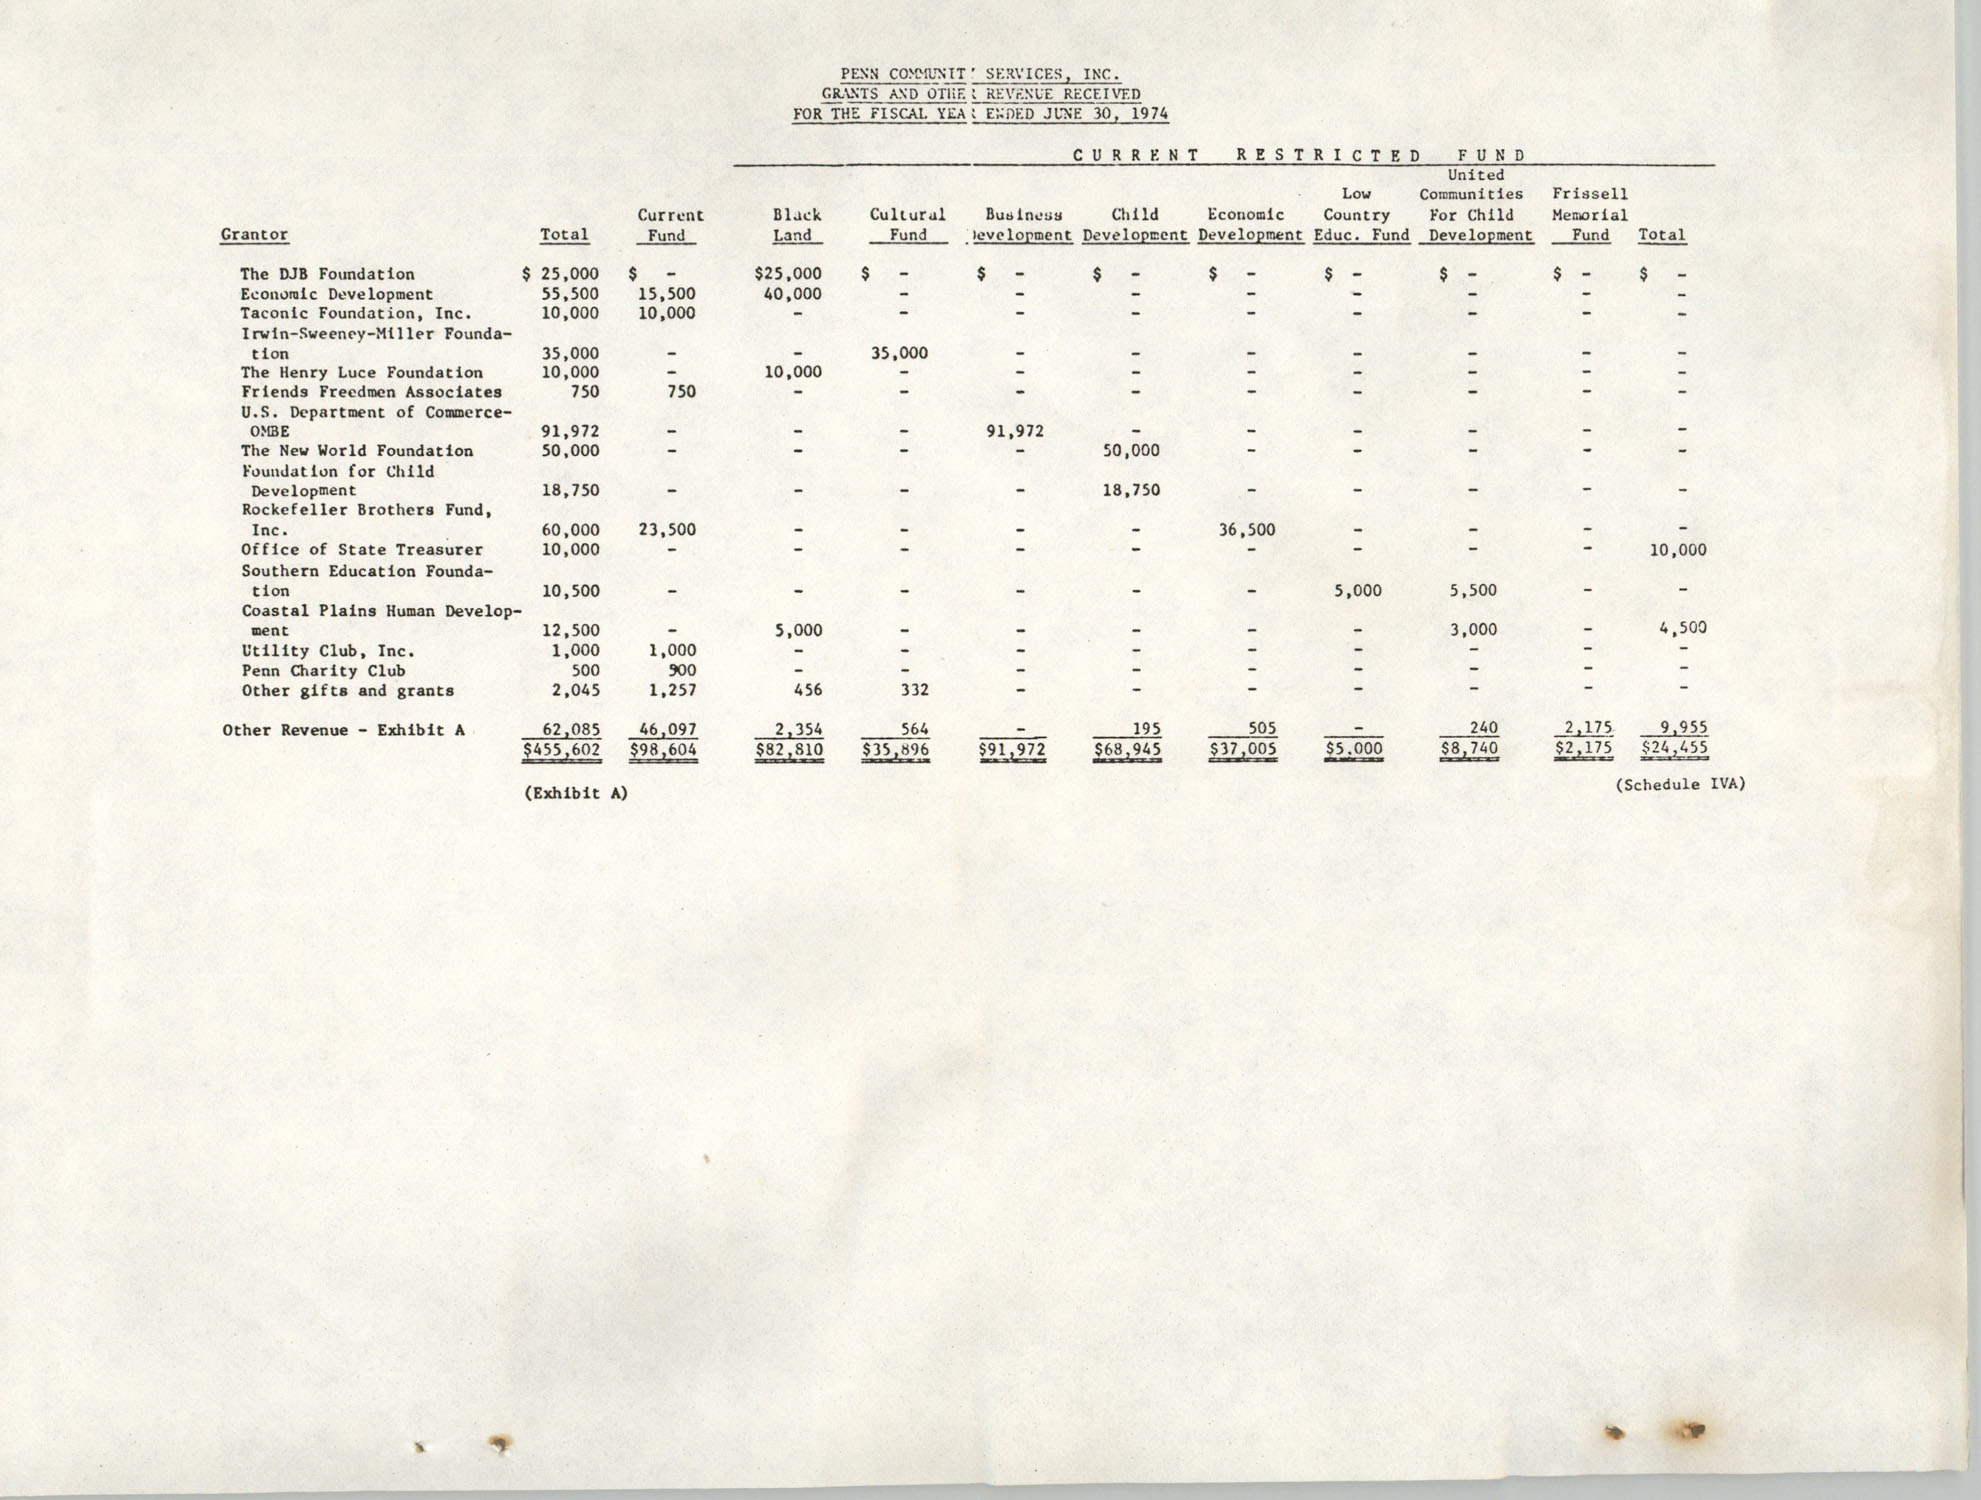 Annual Report, Penn Community Services, 1974, Page 36